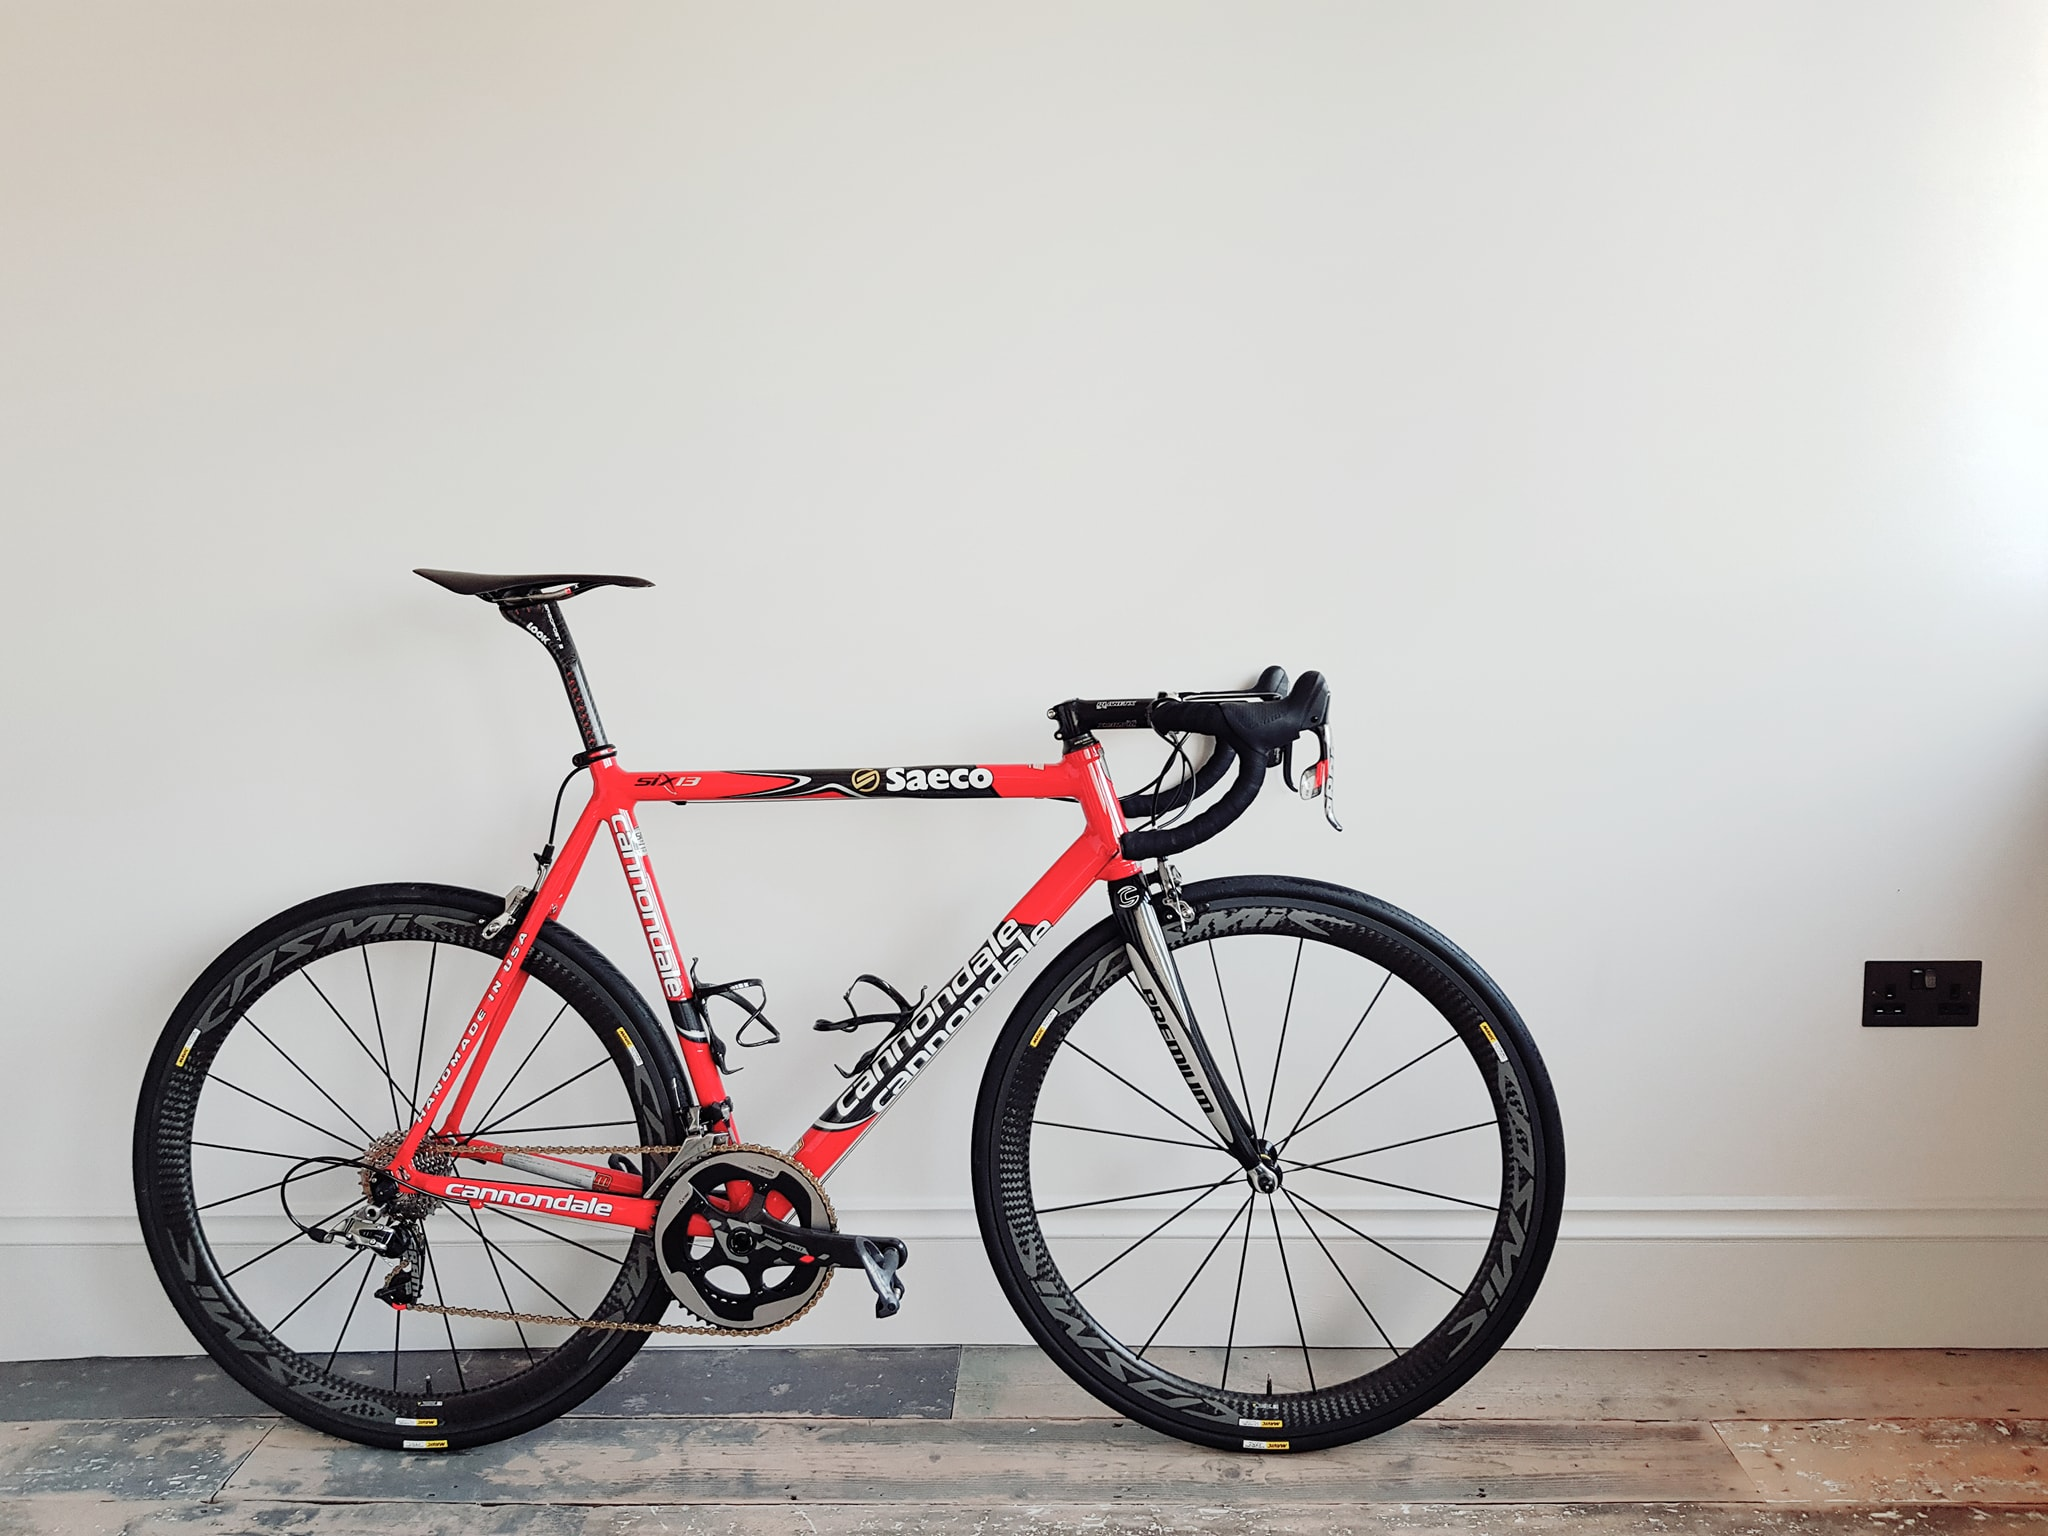 Cannondale Saeco.jpg